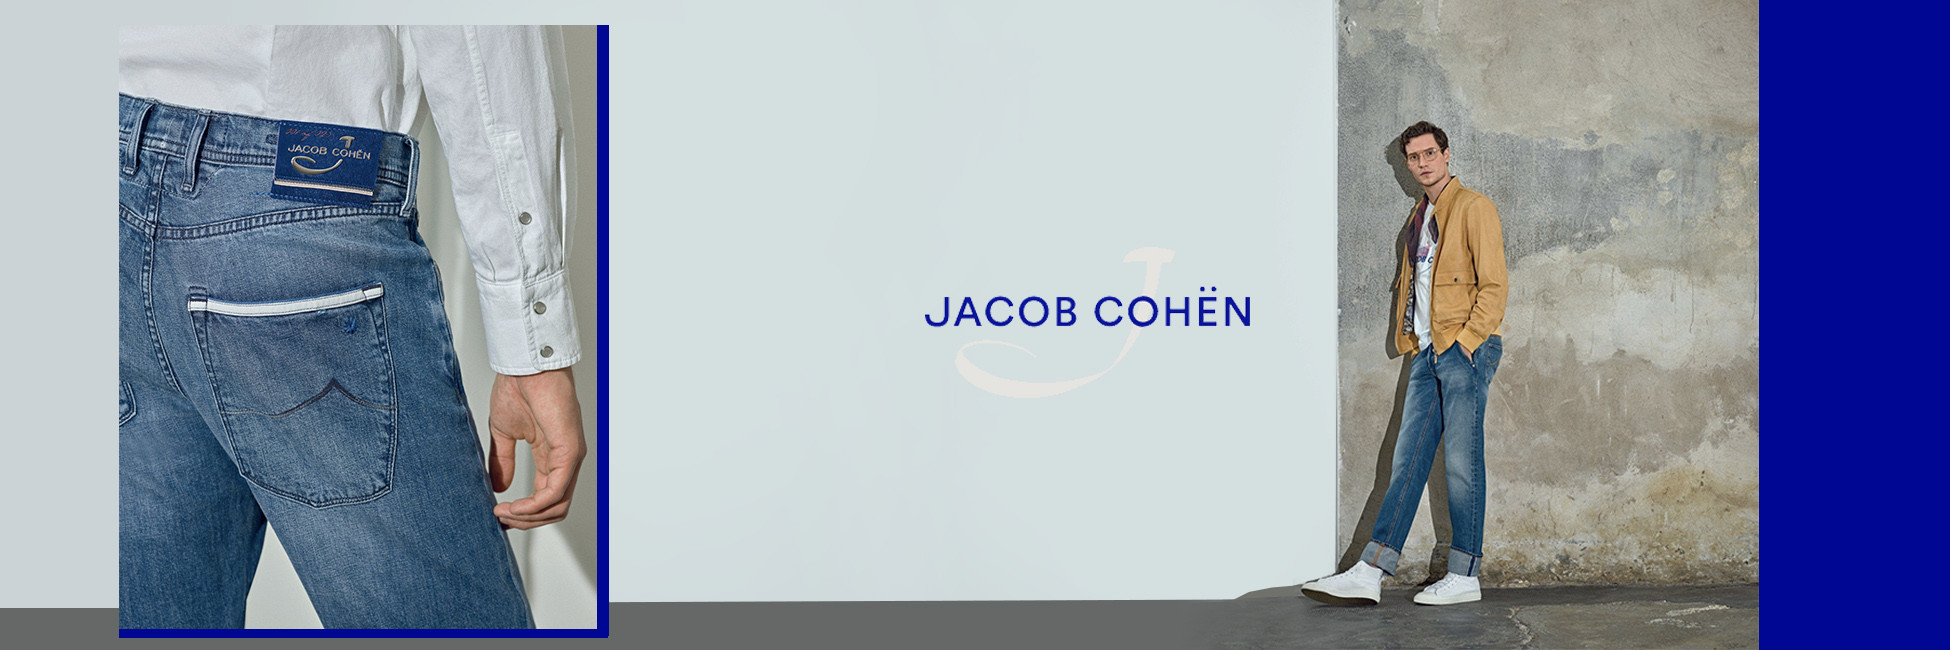 JACOB COHEN S2020